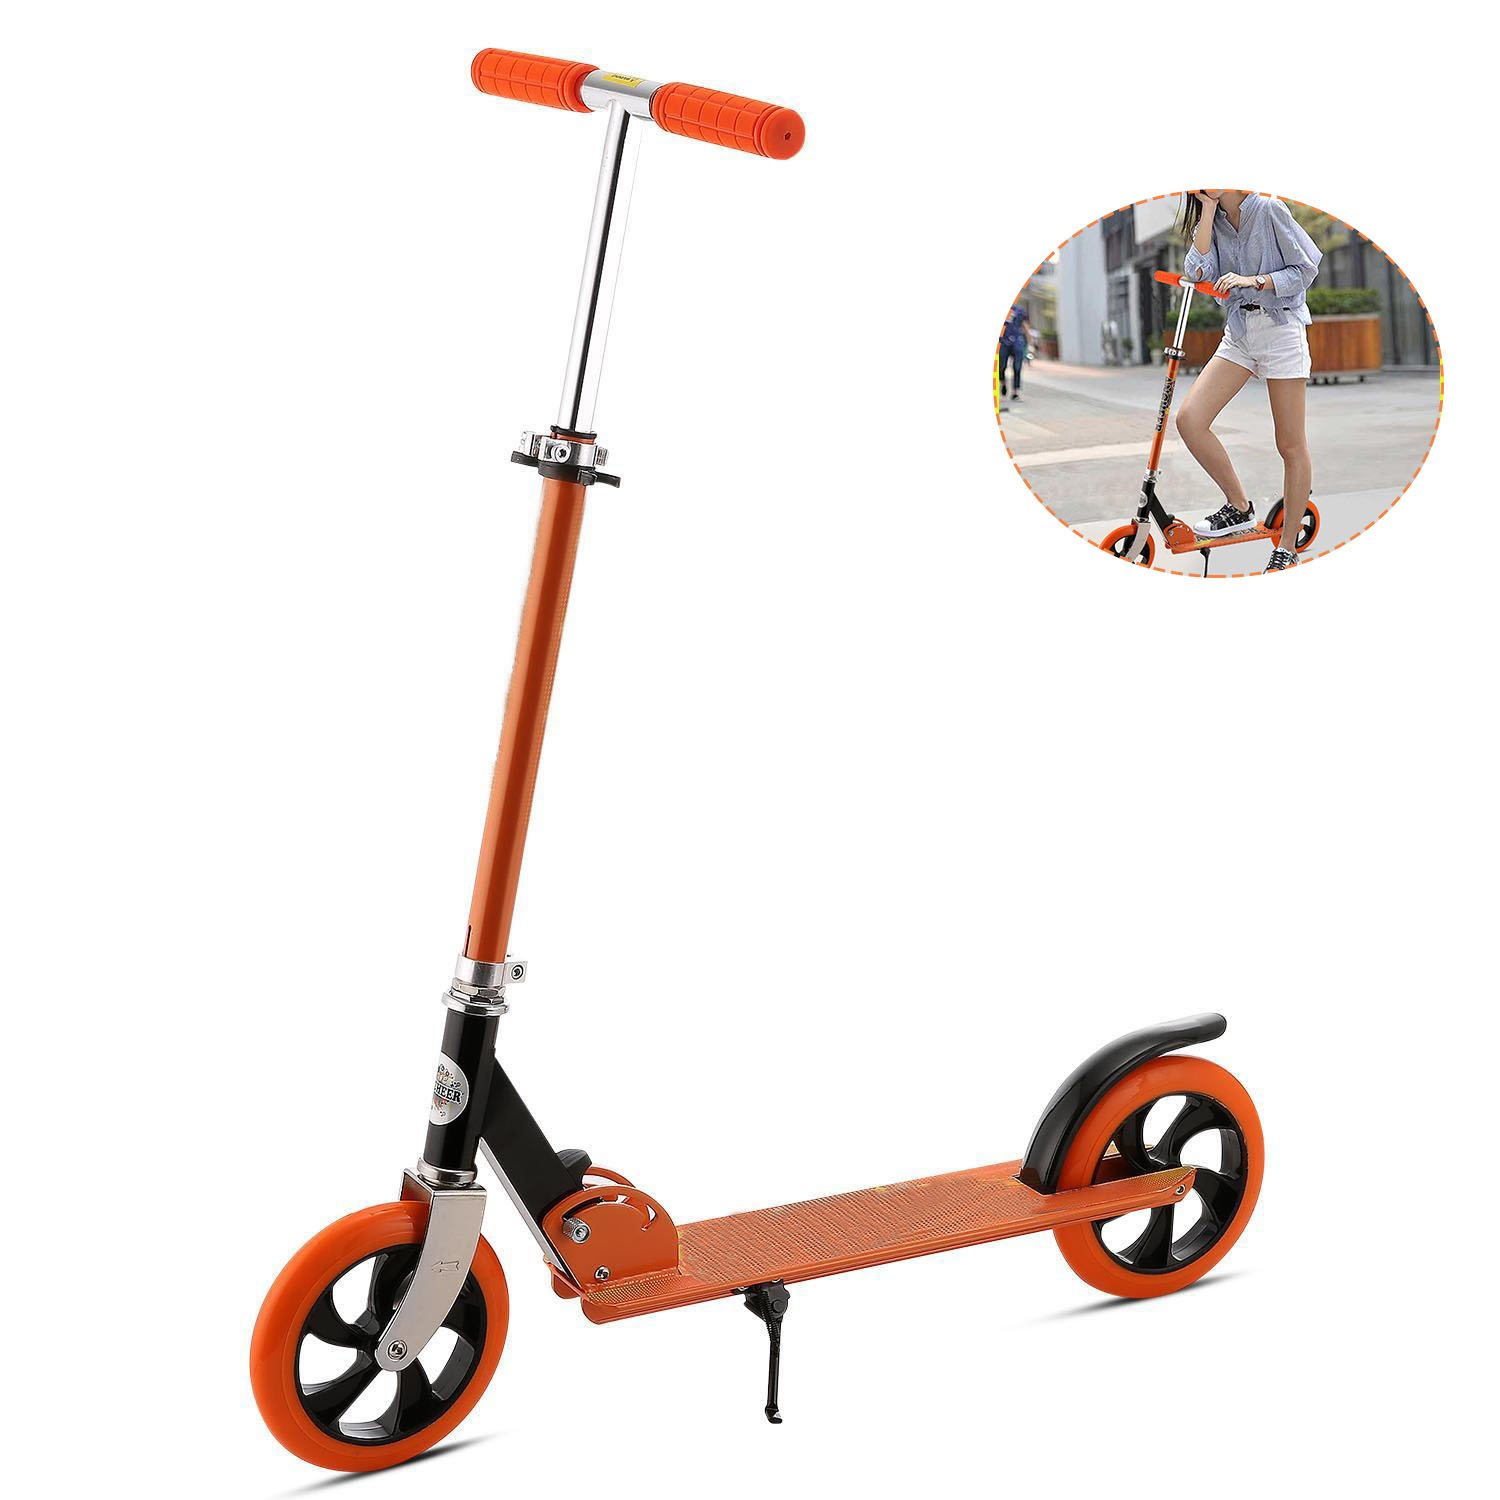 Cheesea Adult Kick Scooter, City Street Push Scooter for Teens, Height Adjustable, 3-Seconds Easy-Folding Mechanism, Aluminum Alloy Frame, Smooth & Fast Ride